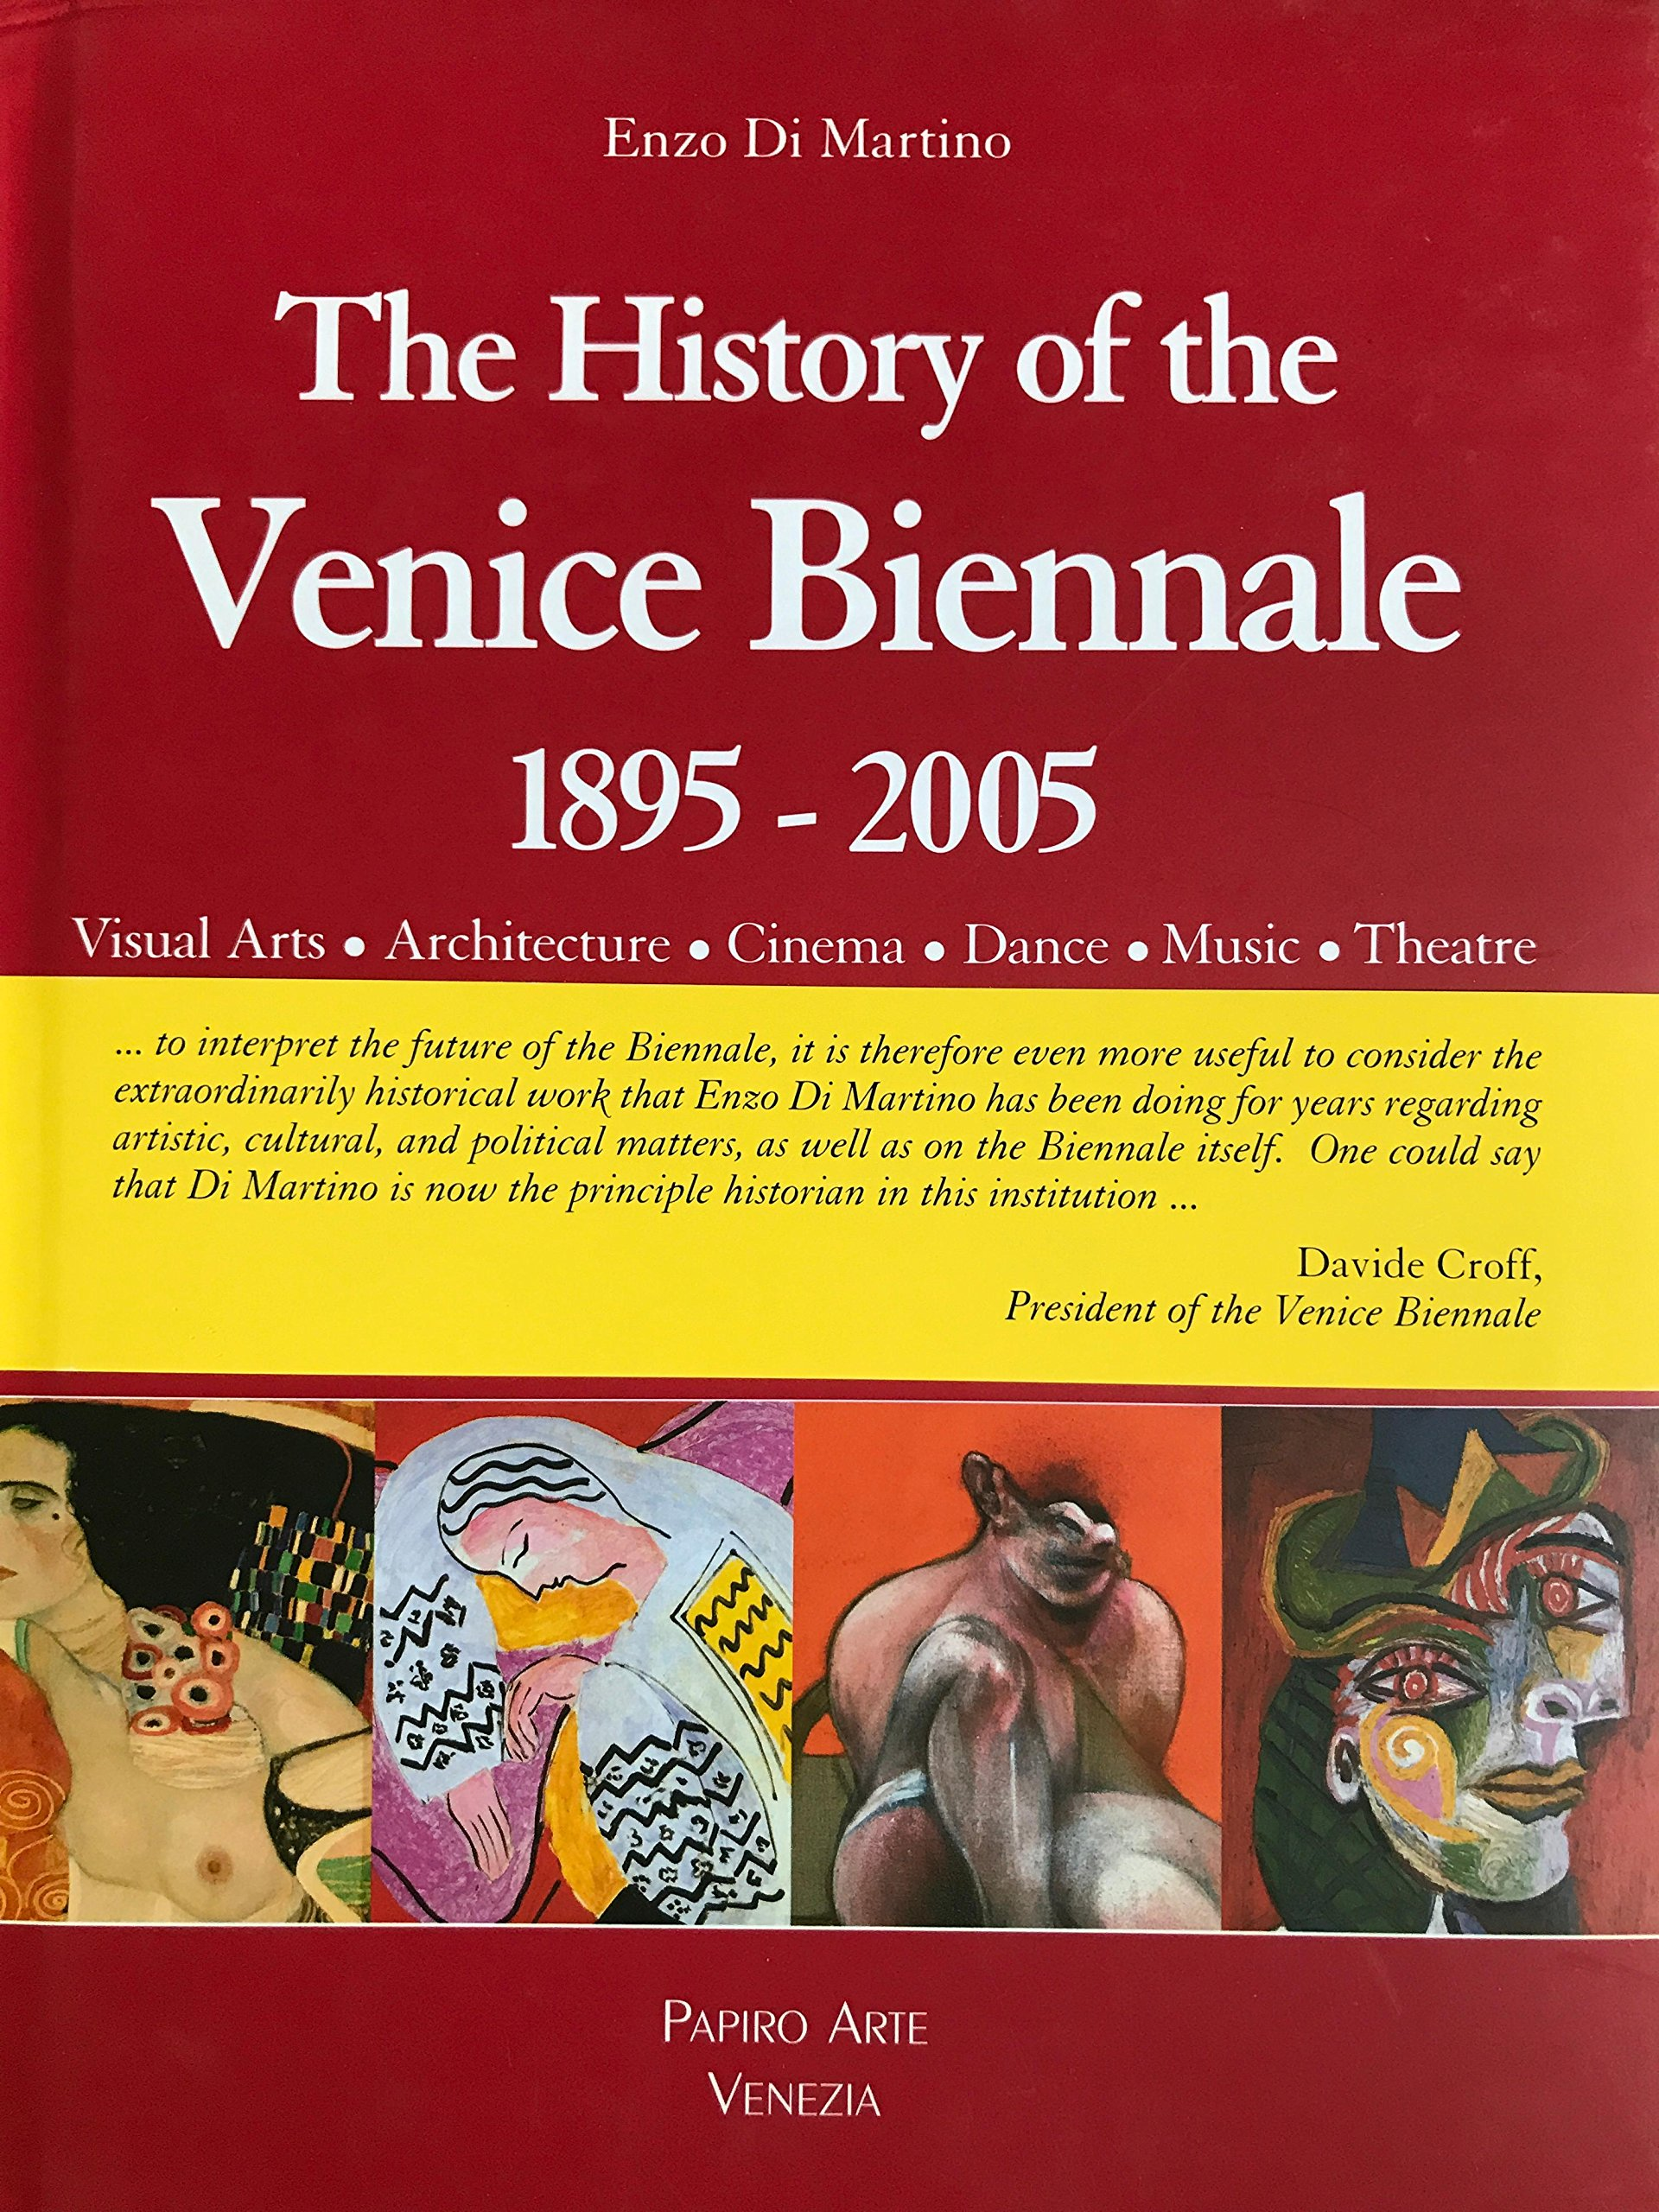 The History of the Venice Biennal 1895-2007